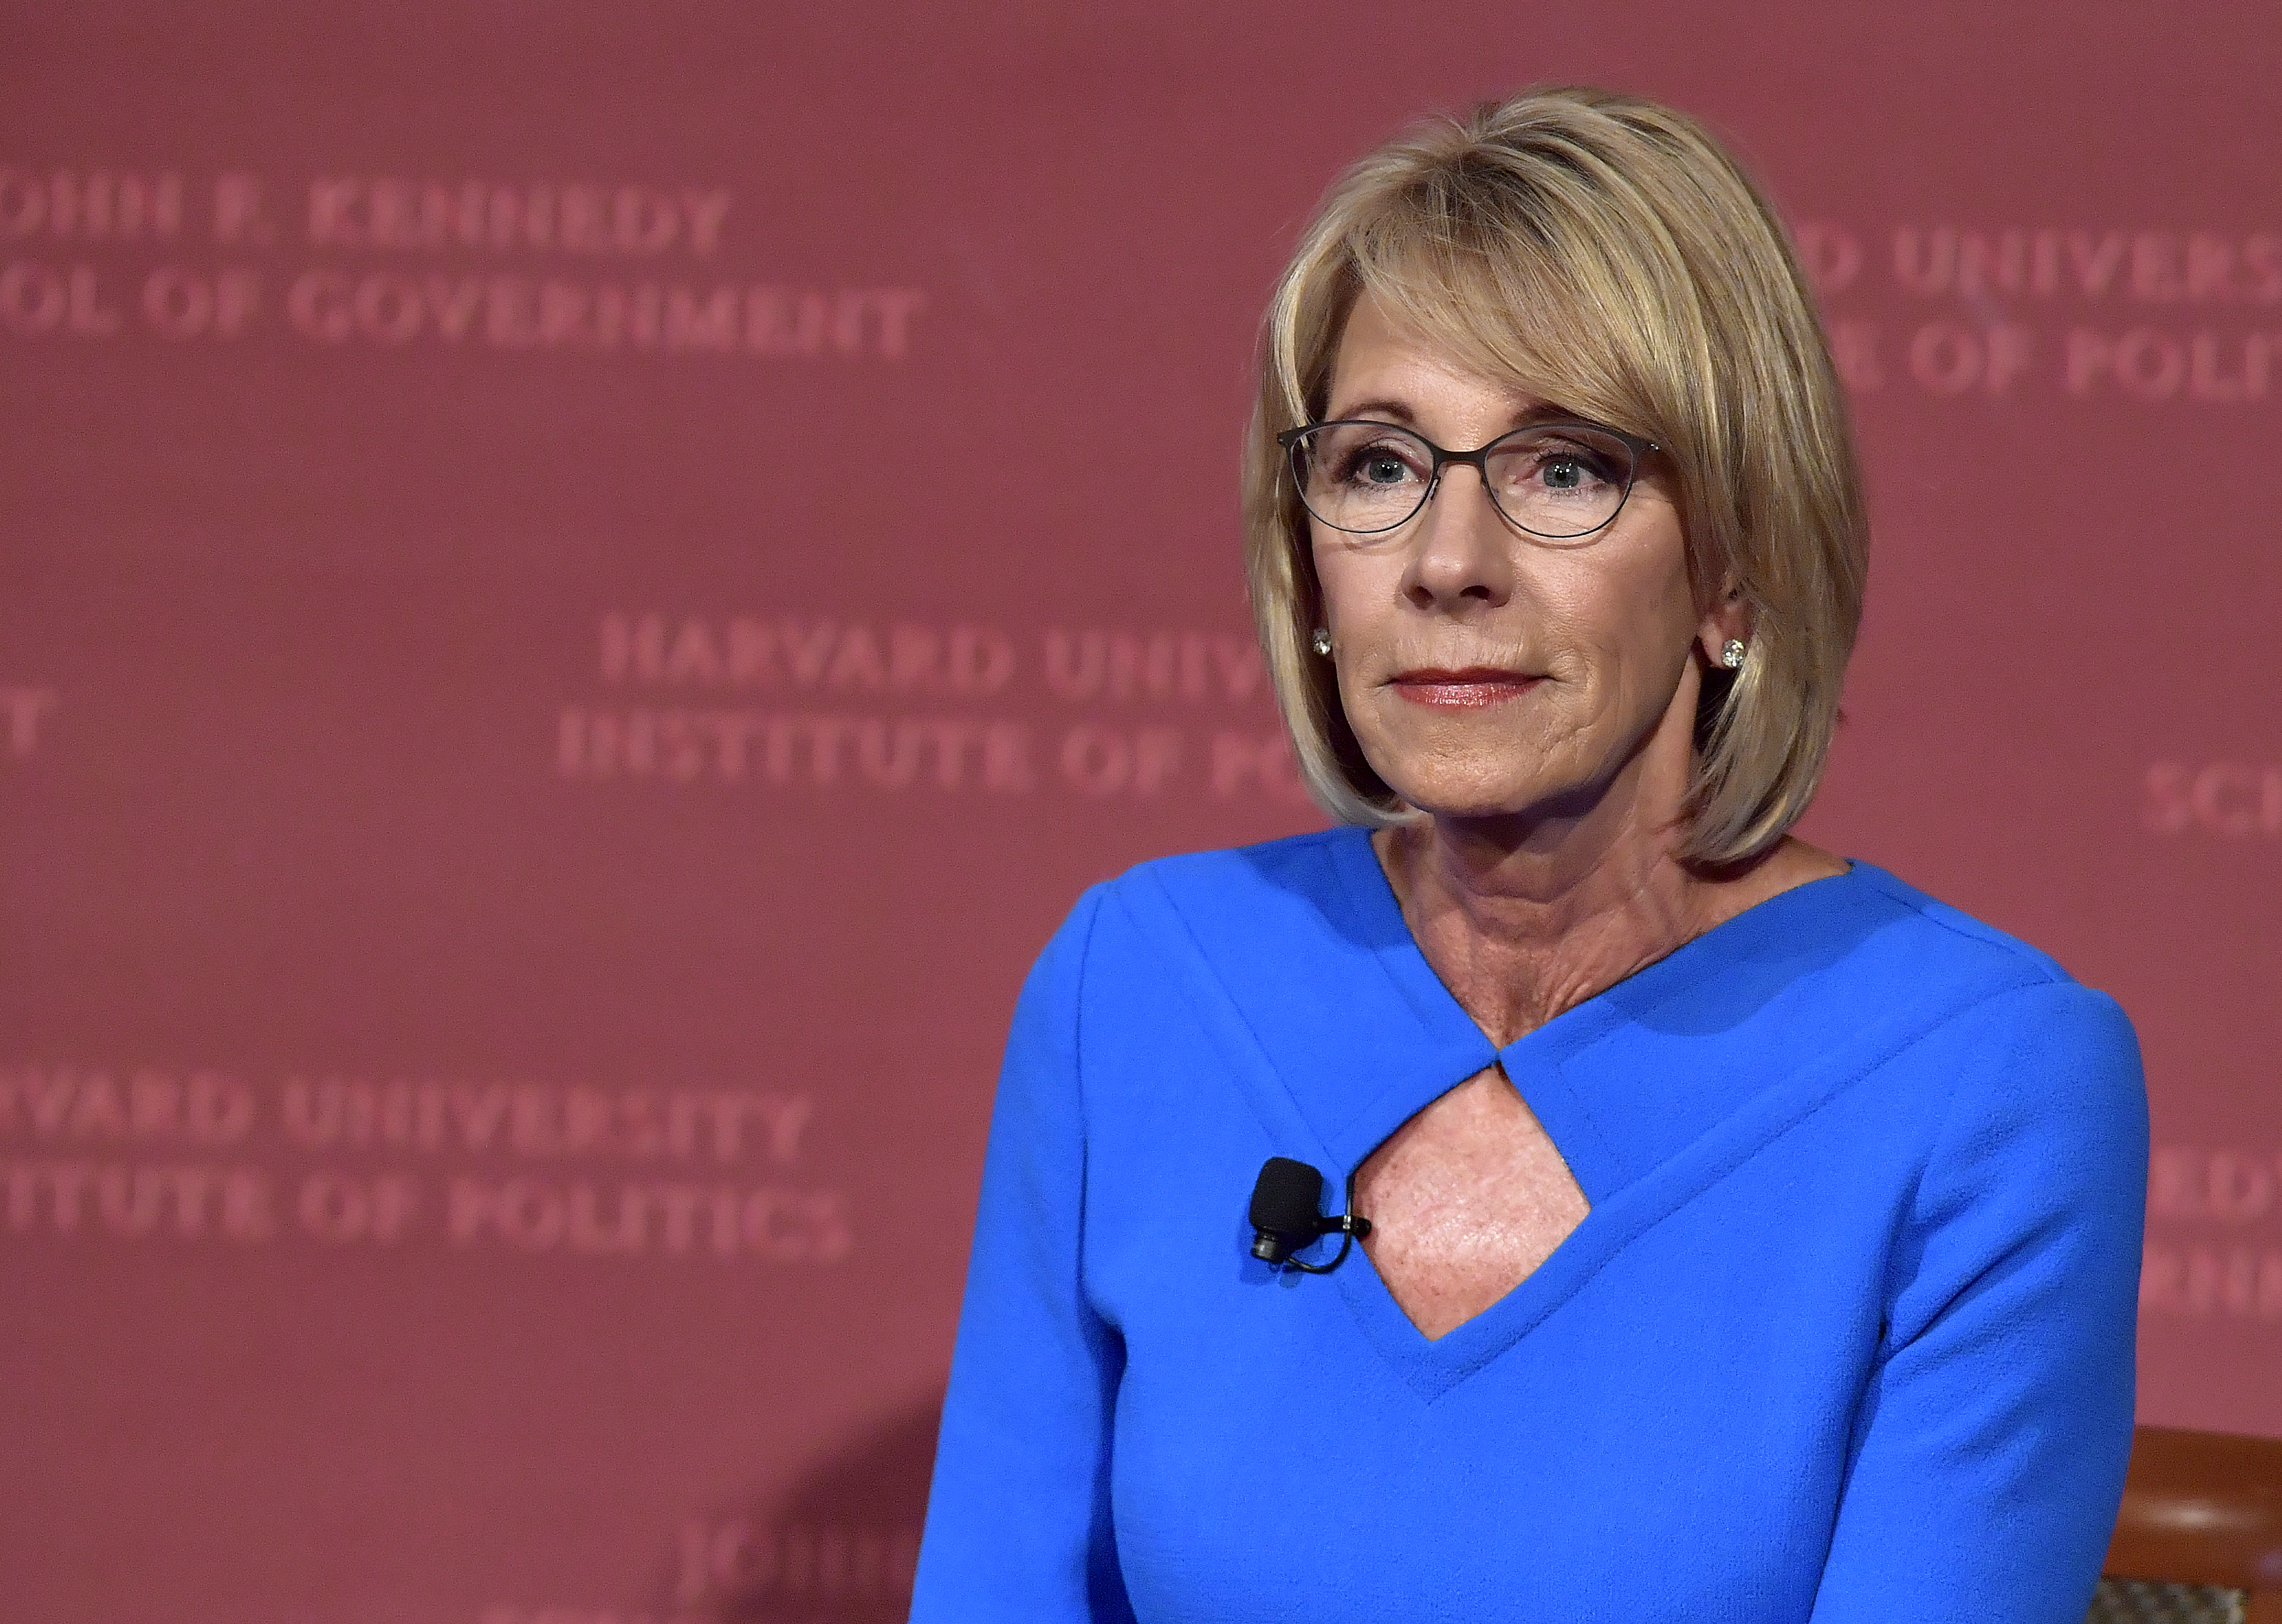 CAMBRIDGE, MA - SEPTEMBER 28:  Education Secretary Betsy DeVos listens during the Harvard University John F. Kennedy Jr. Forum on  A Conversation On Empowering Parents  moderated by Paul Peterson on September 28, 2017 in Cambridge, Massachusetts.  DeVos was met by protestors both outside the venue and inside during her remarks.  (Photo by Paul Marotta/Getty Images)